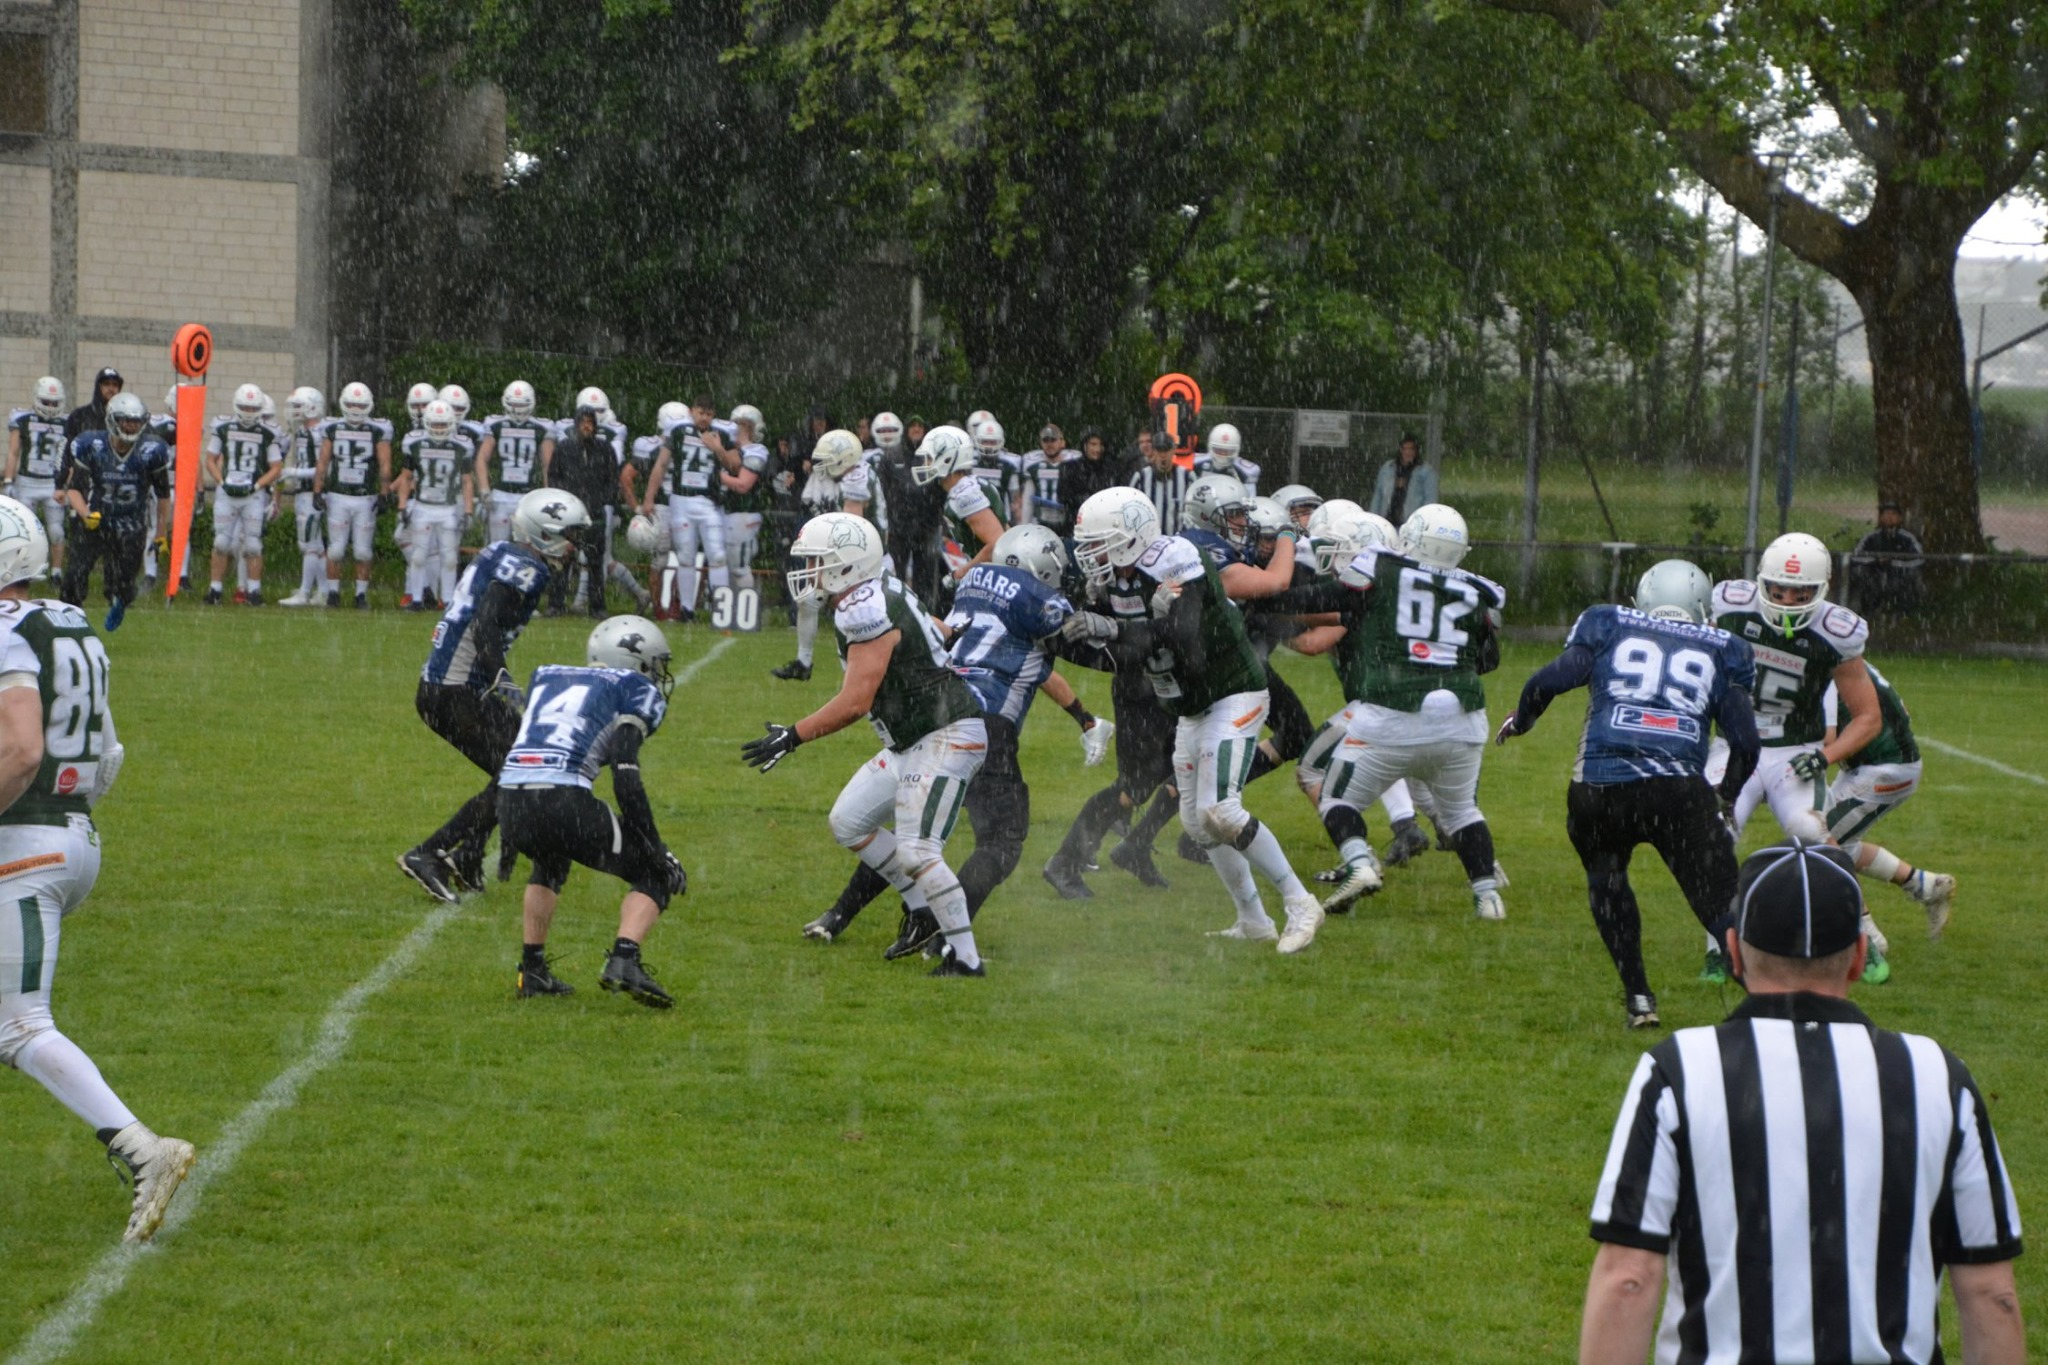 SV Kornwestheim Cougars vs Schwaebisch Hall Unicorns 2 110519 03